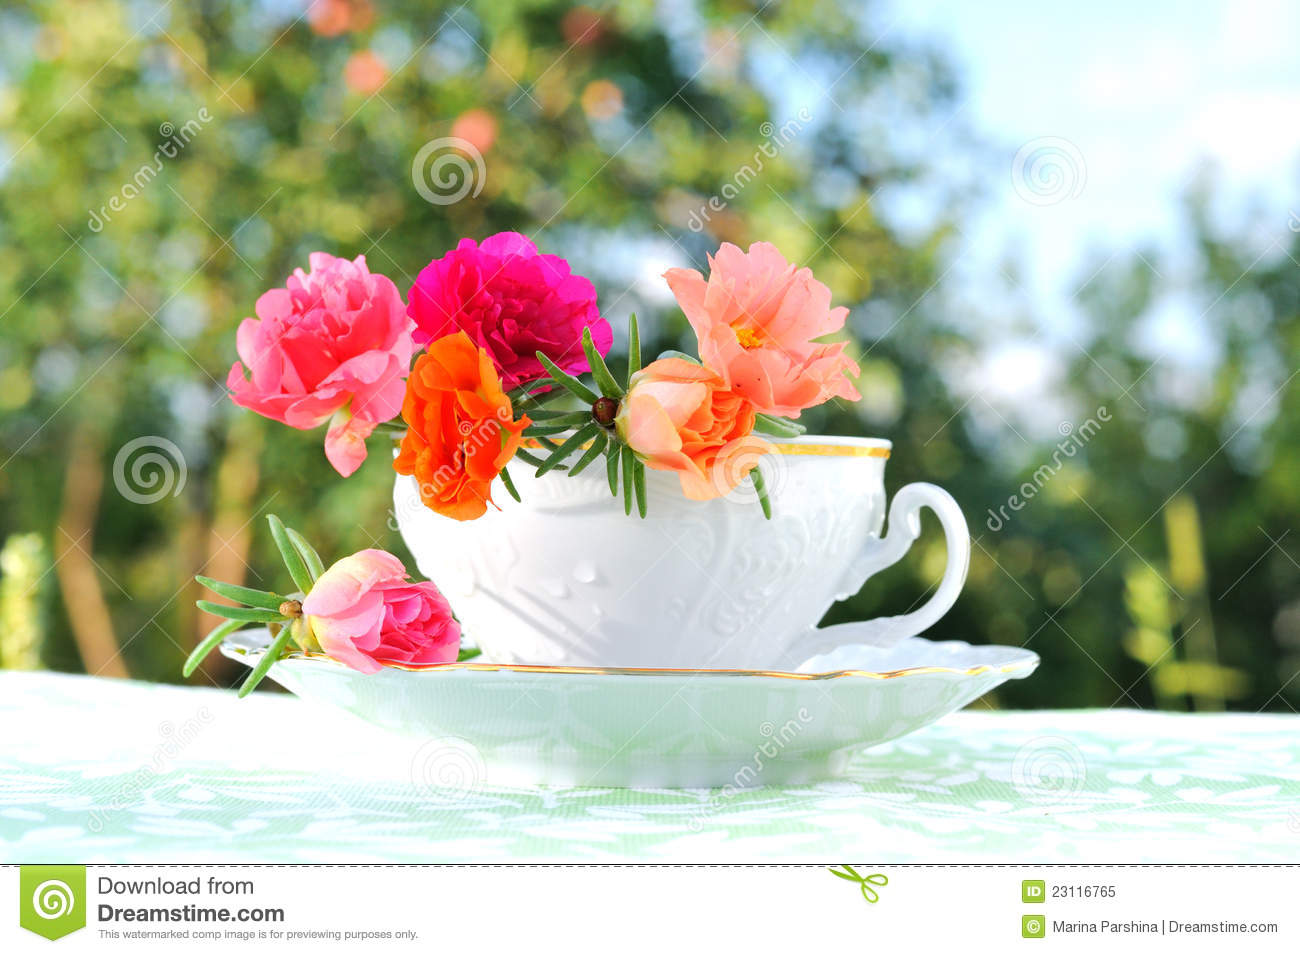 purslane flowers in a cup stock image image of life 23116765